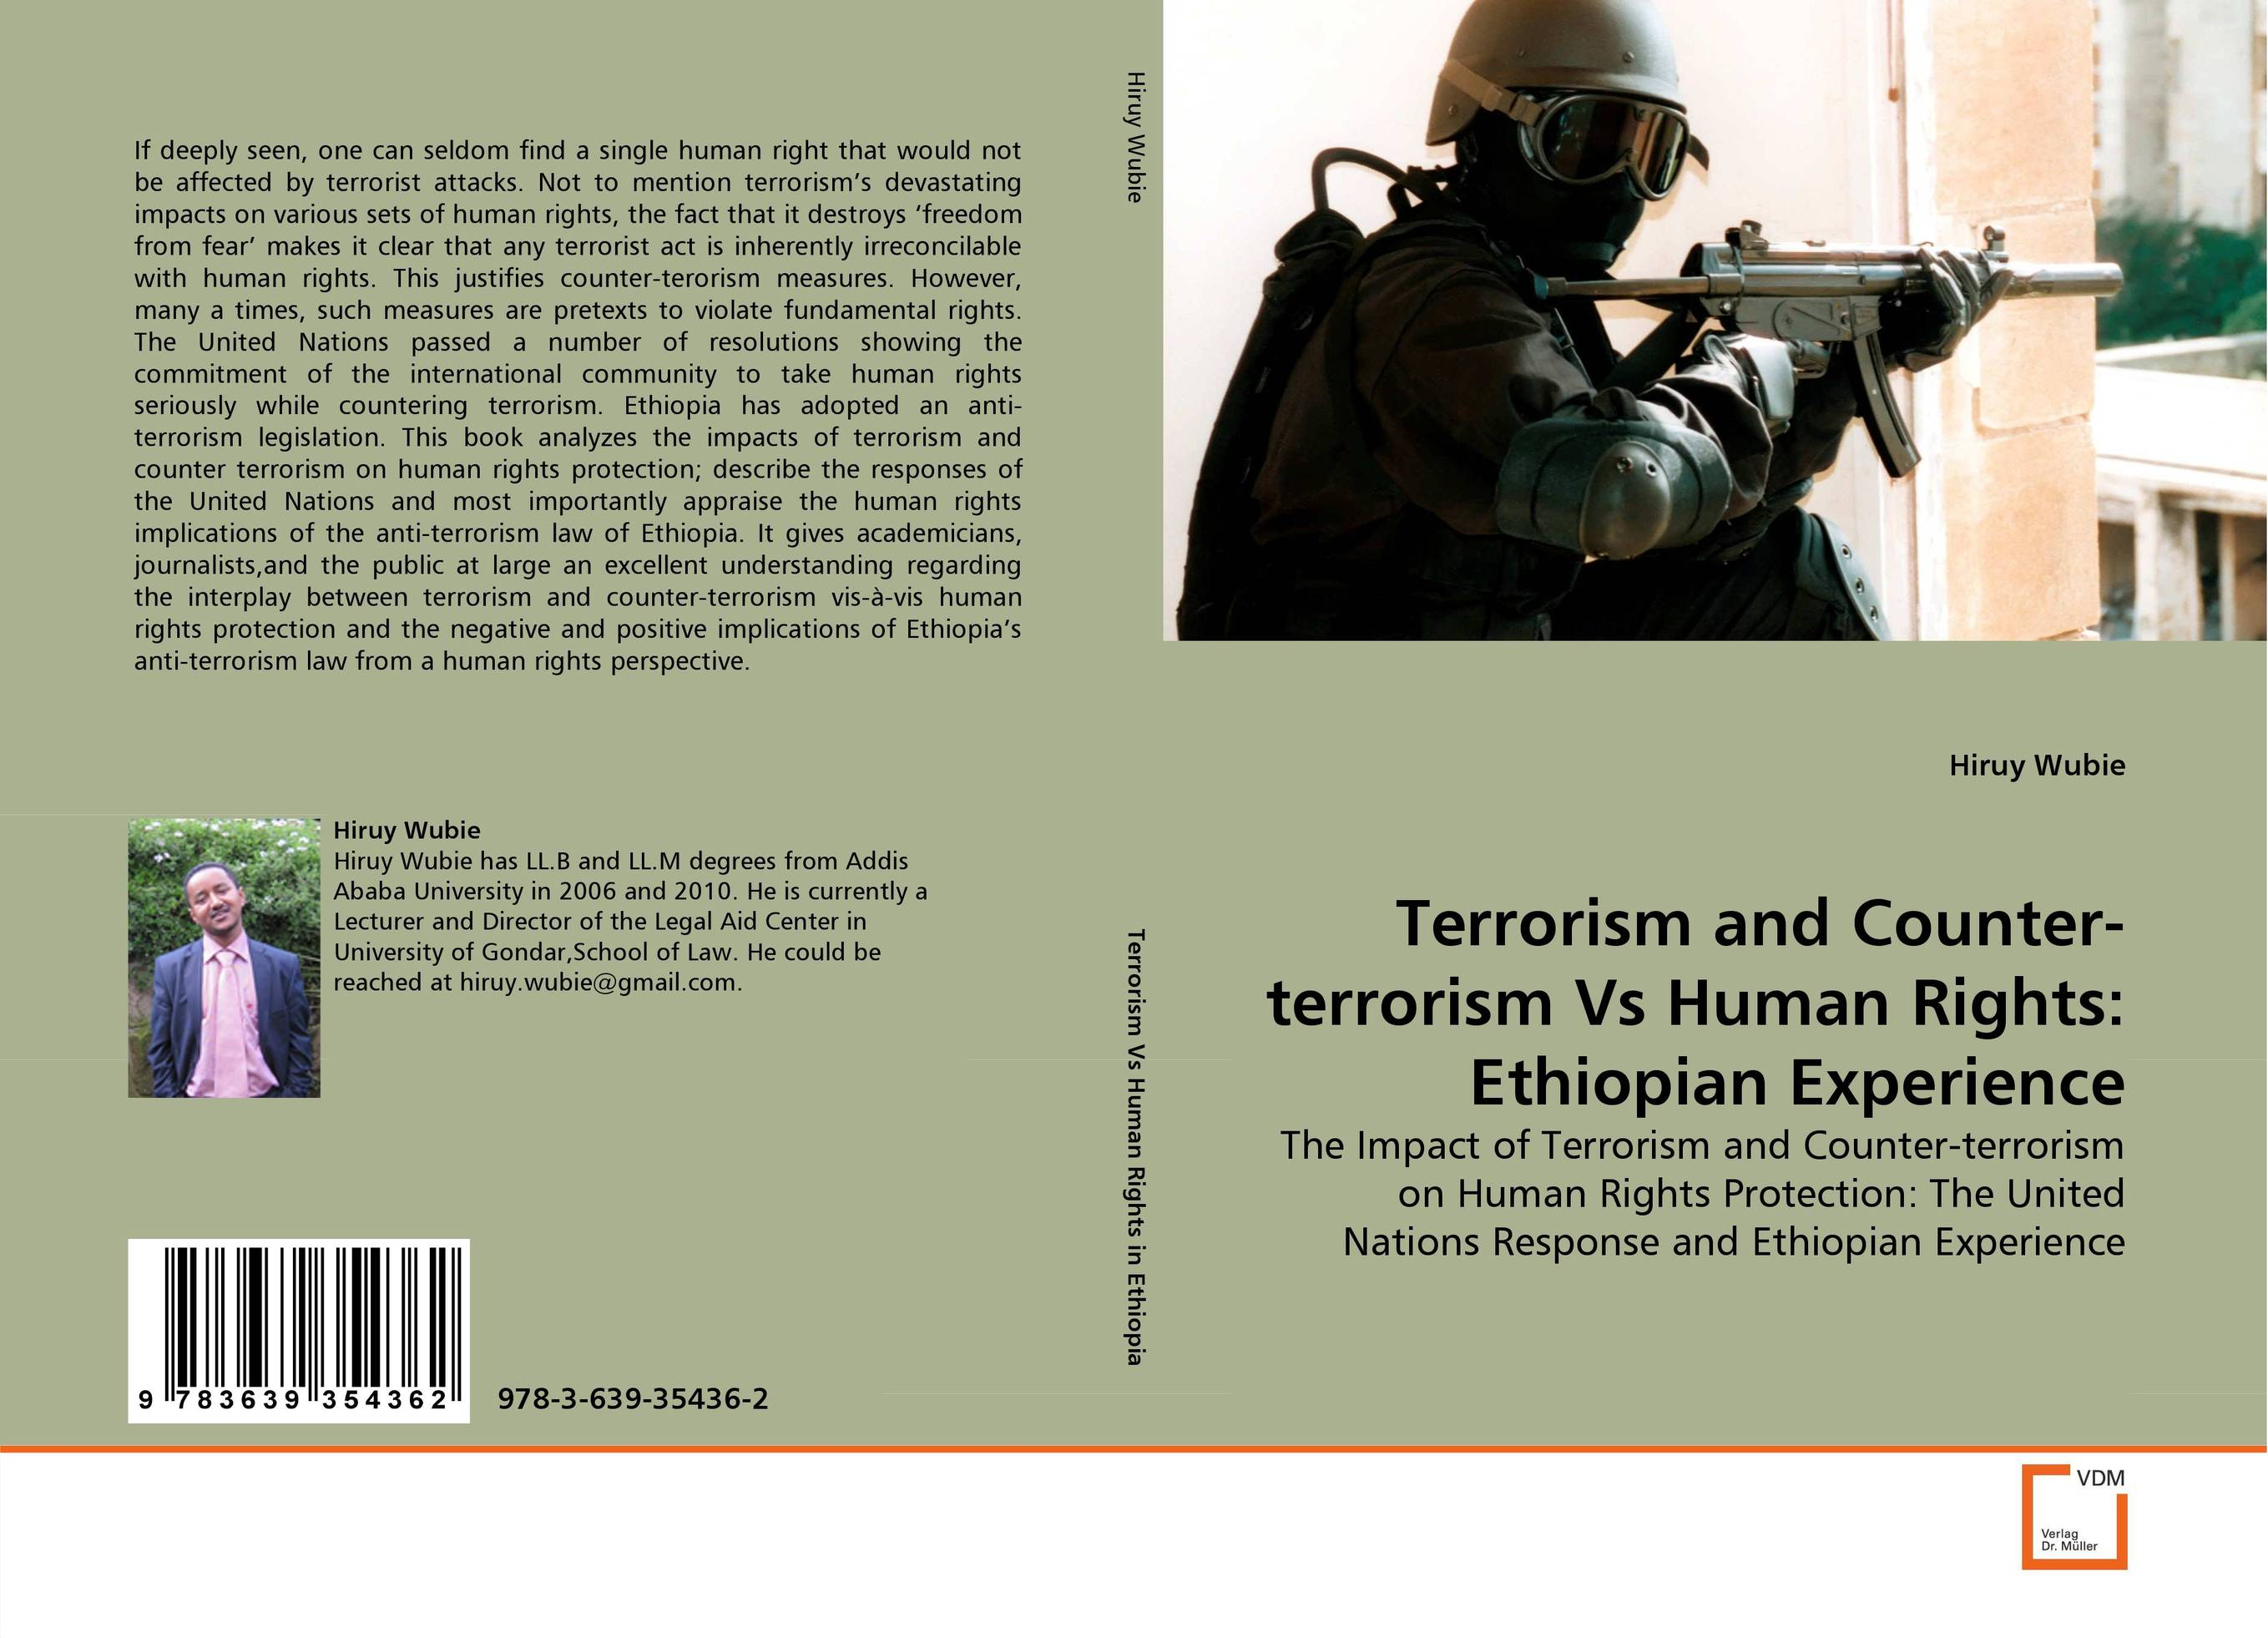 counter-terrorism policy and human rights essay The war on terrorism came up with extensive violations of civil and political rights that still continue to occur in the world, with such incidents as since its start, the war on terrorism has been directly responsible for a broad array of serious human rights violations, including torture, enforced.